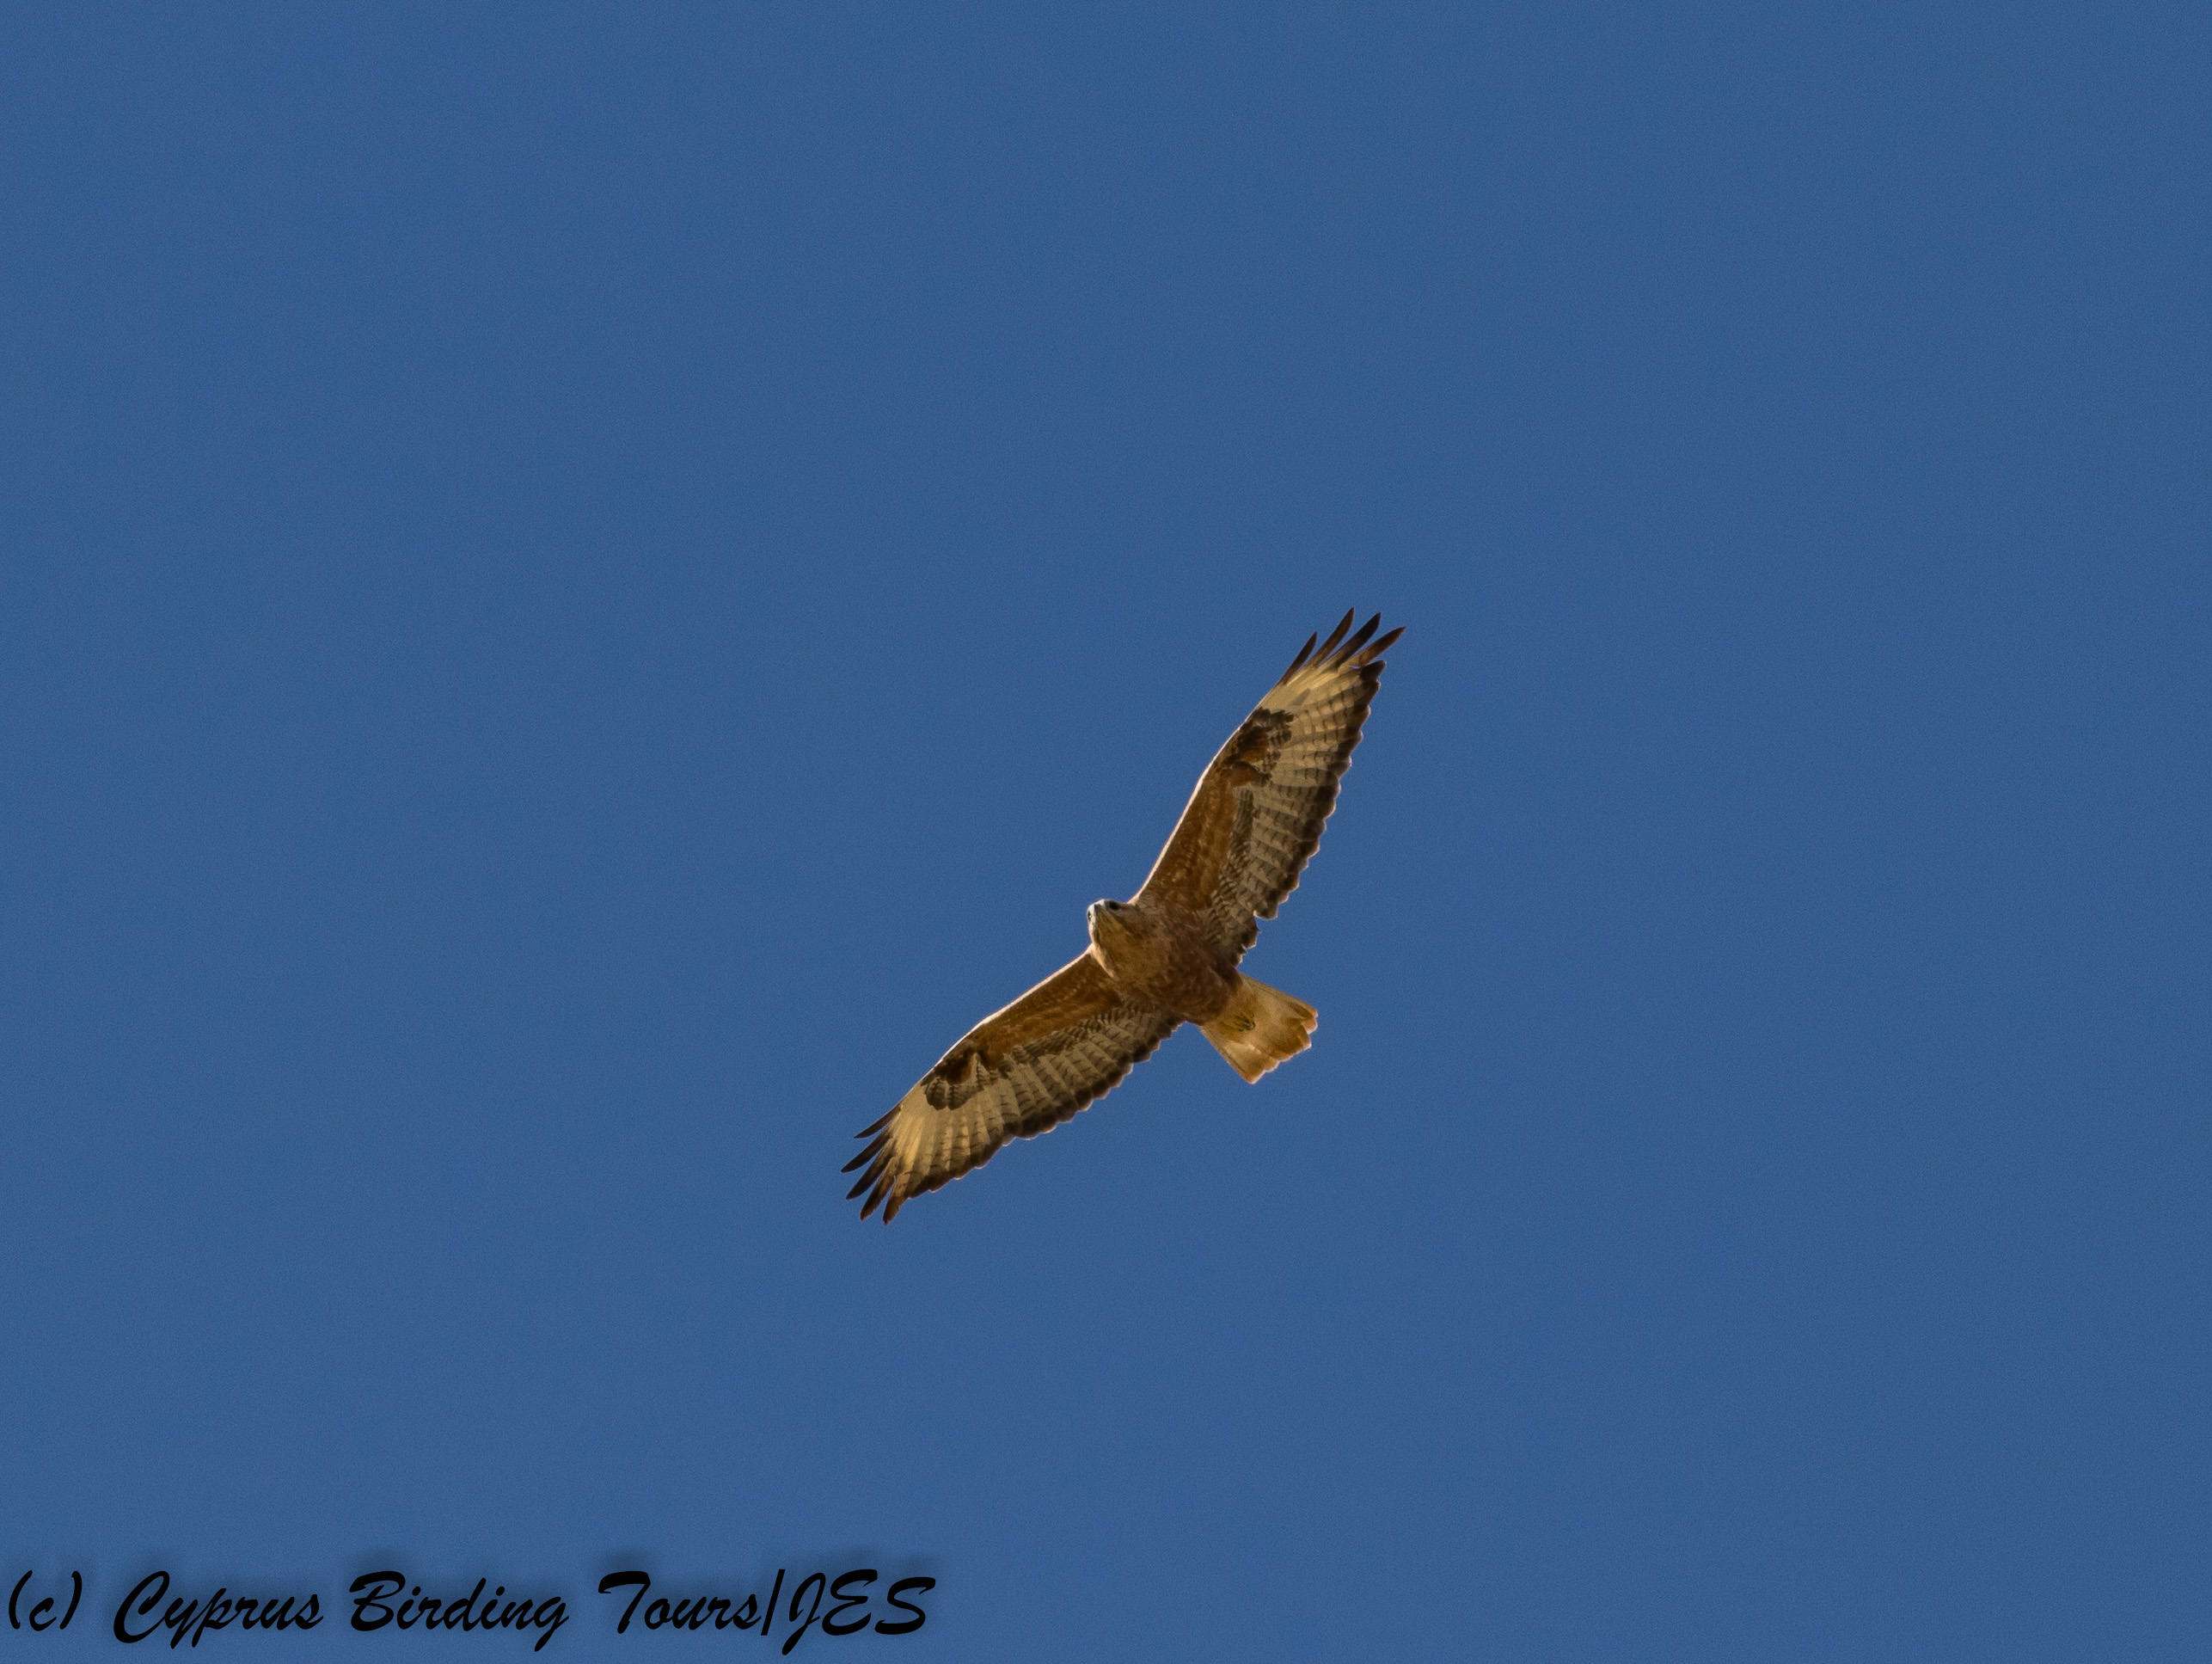 Long-legged Buzzard, Agios Sozomenos 11th November 2017 (c) Cyprus Birding Tours